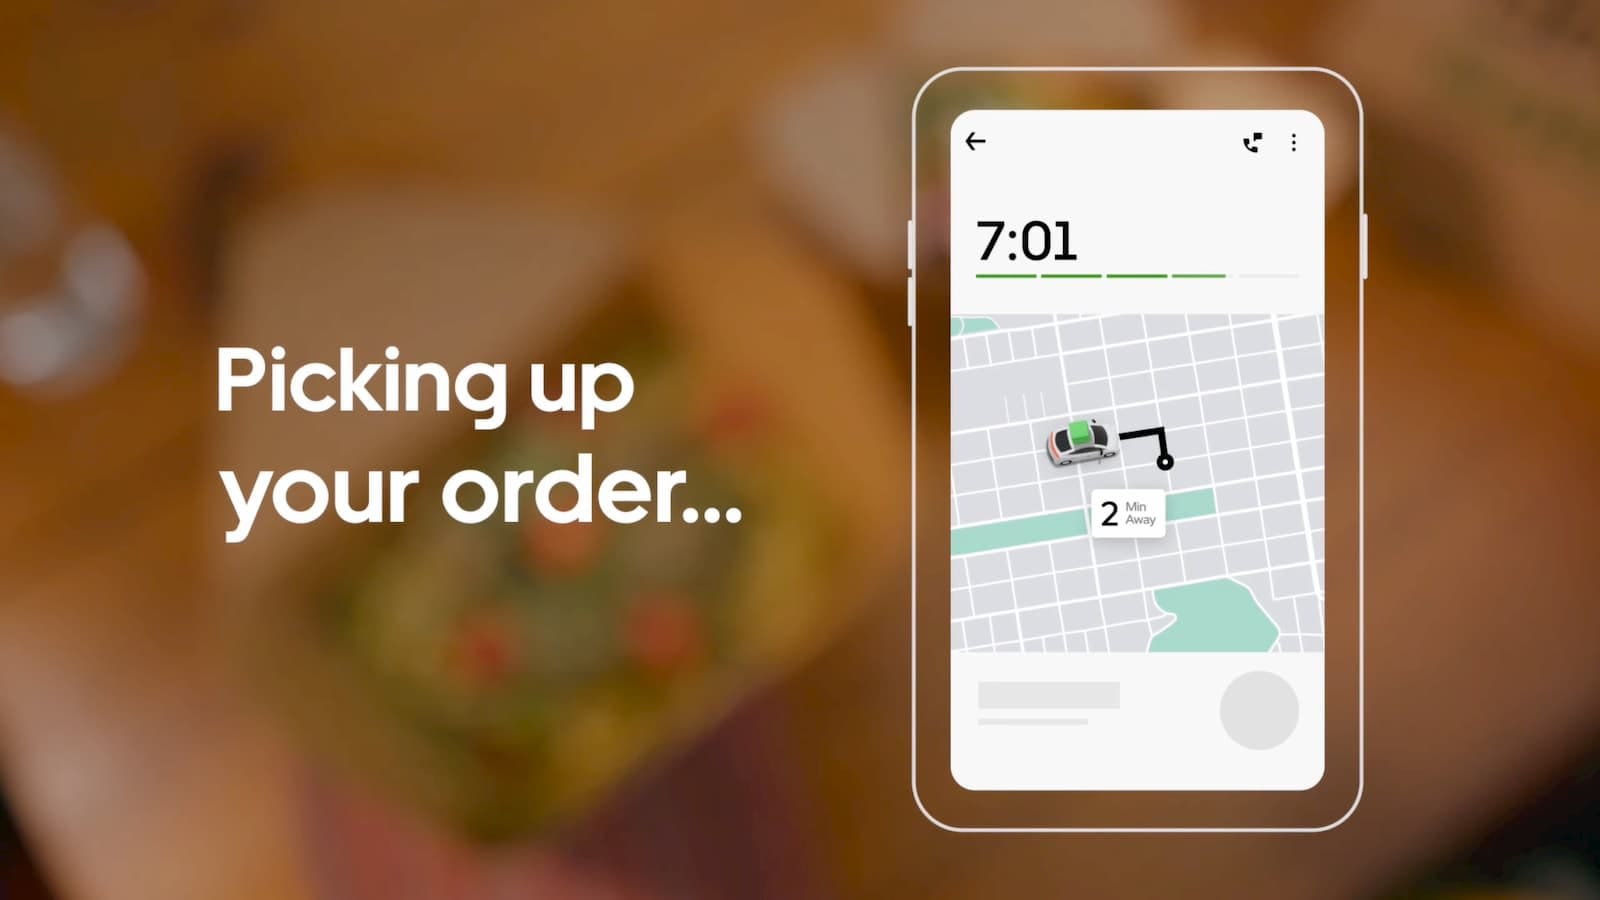 Uber Eats improves order tracking so you can see where your